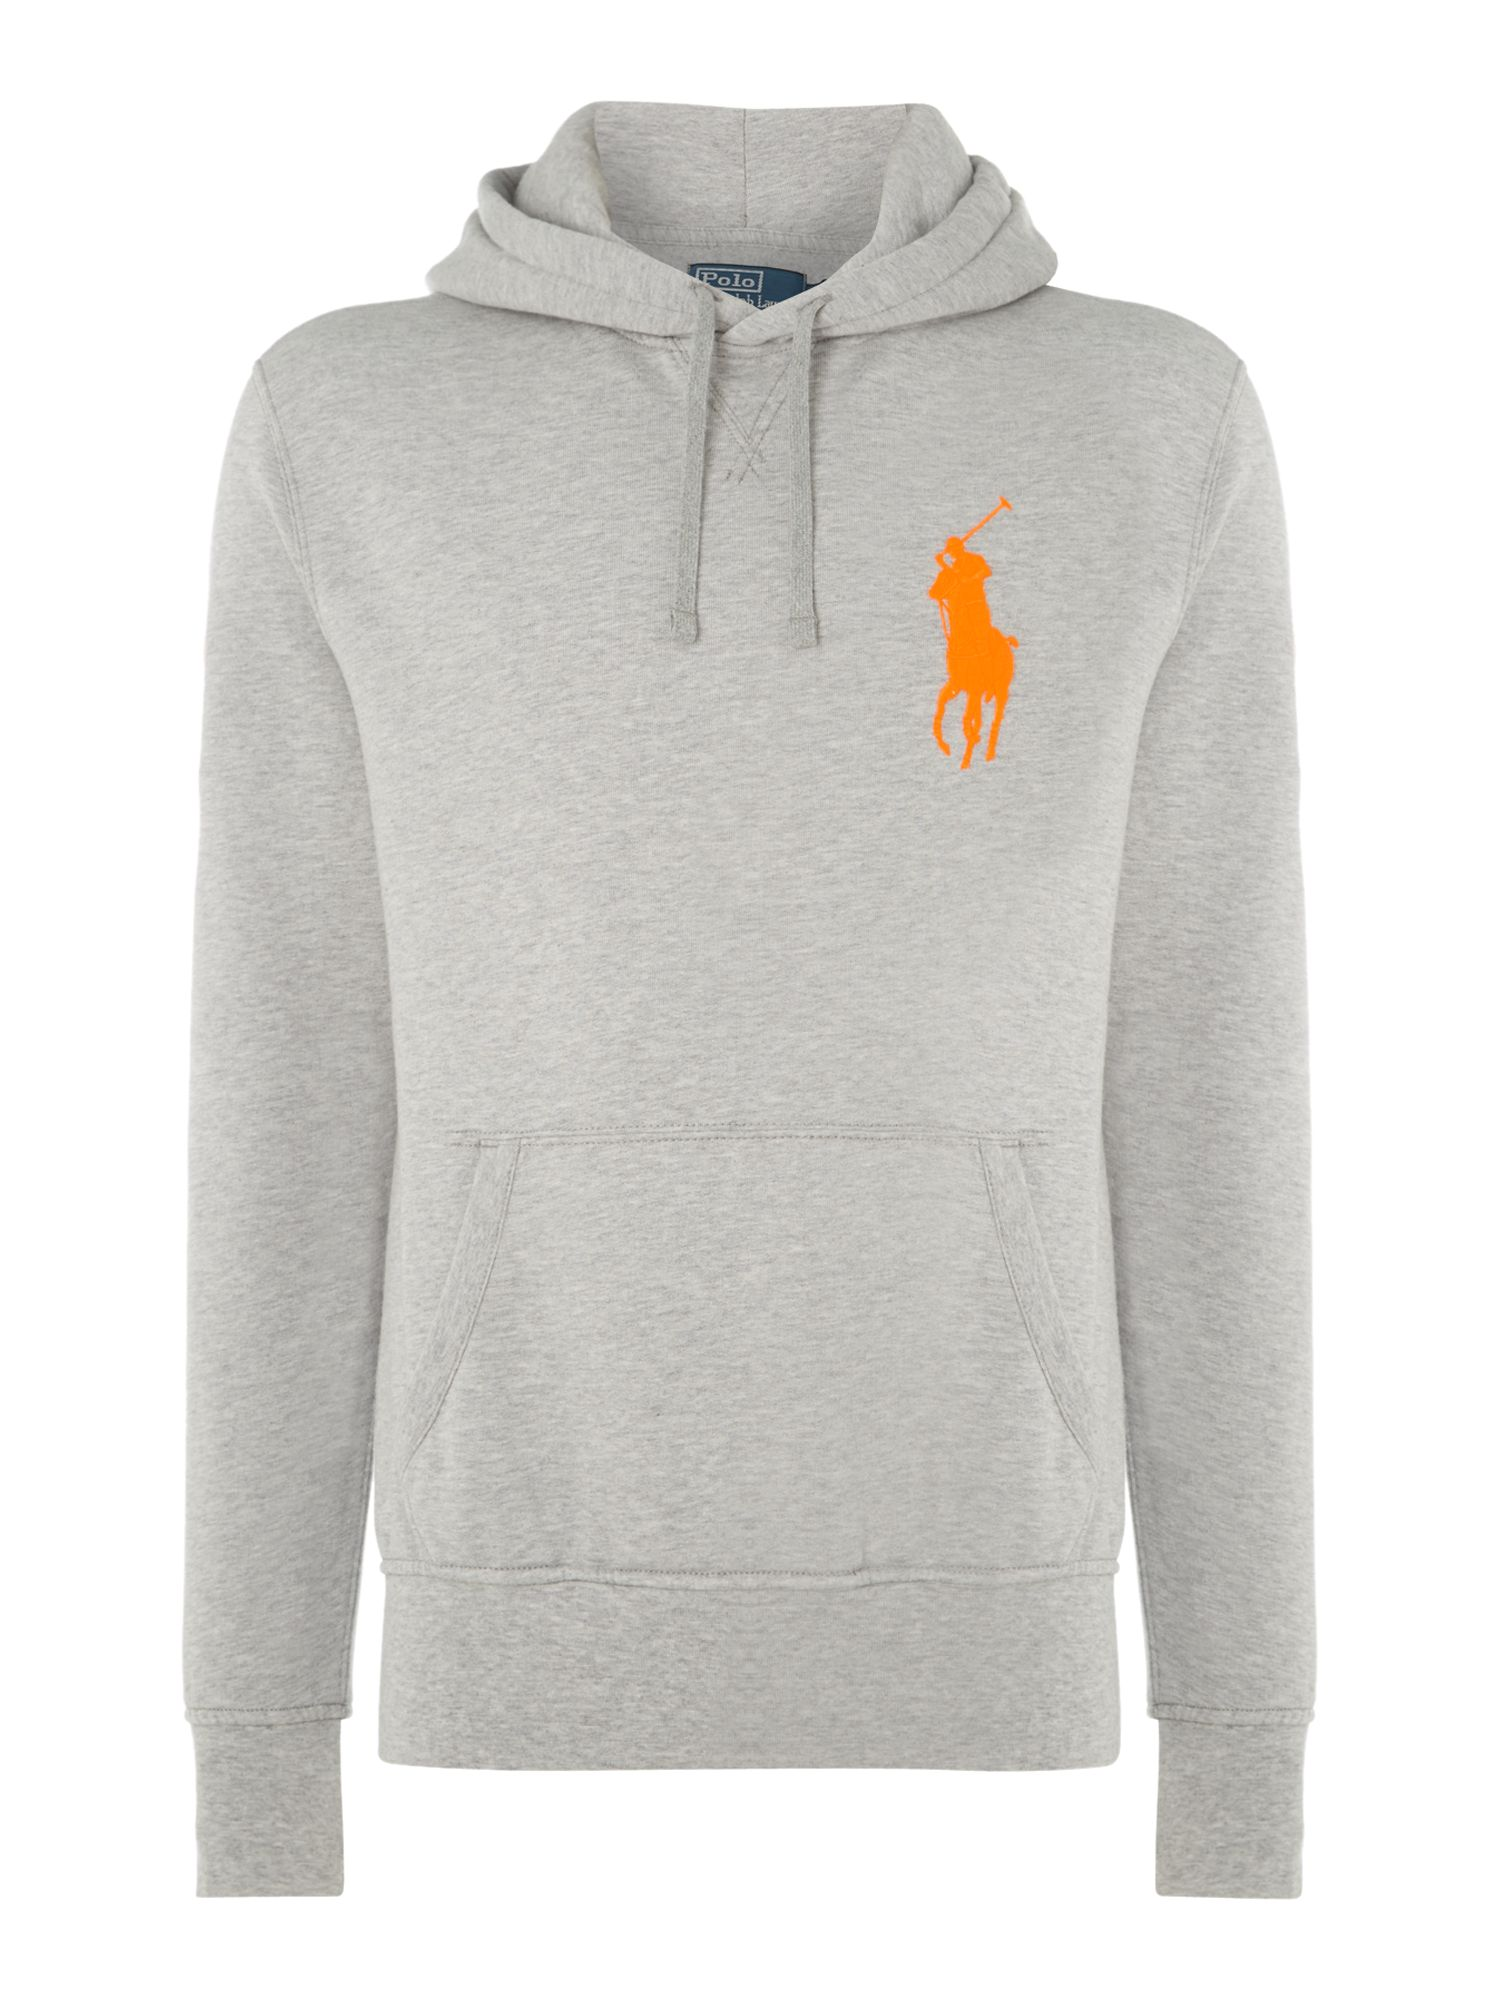 Big pony player fleece hooded sweatshirt